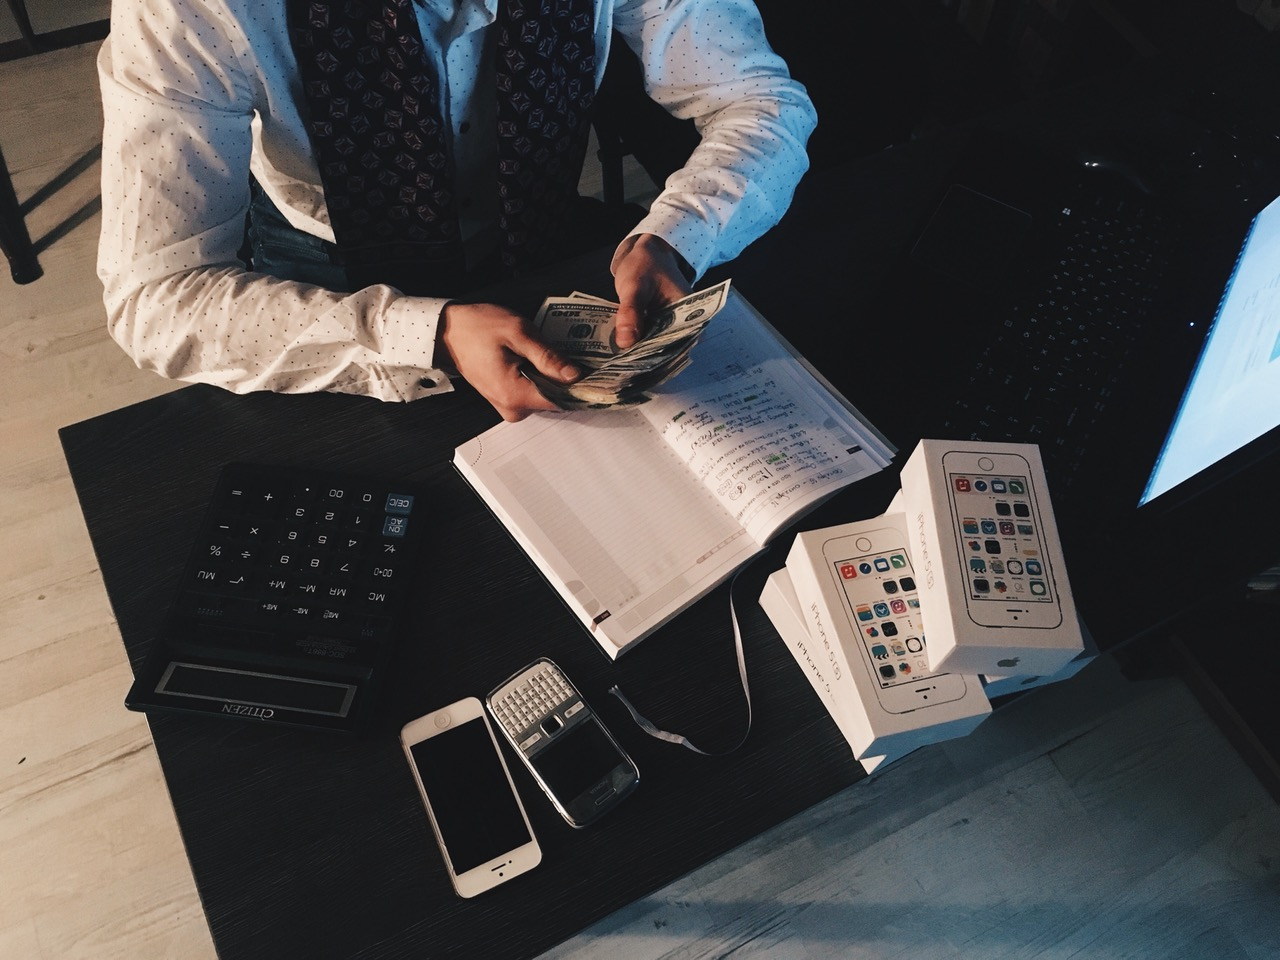 Before an etrepreneur gets to the money, lot's got to be done. A scrapbook allows the entrepreneur monopolise knowledge and exploit it